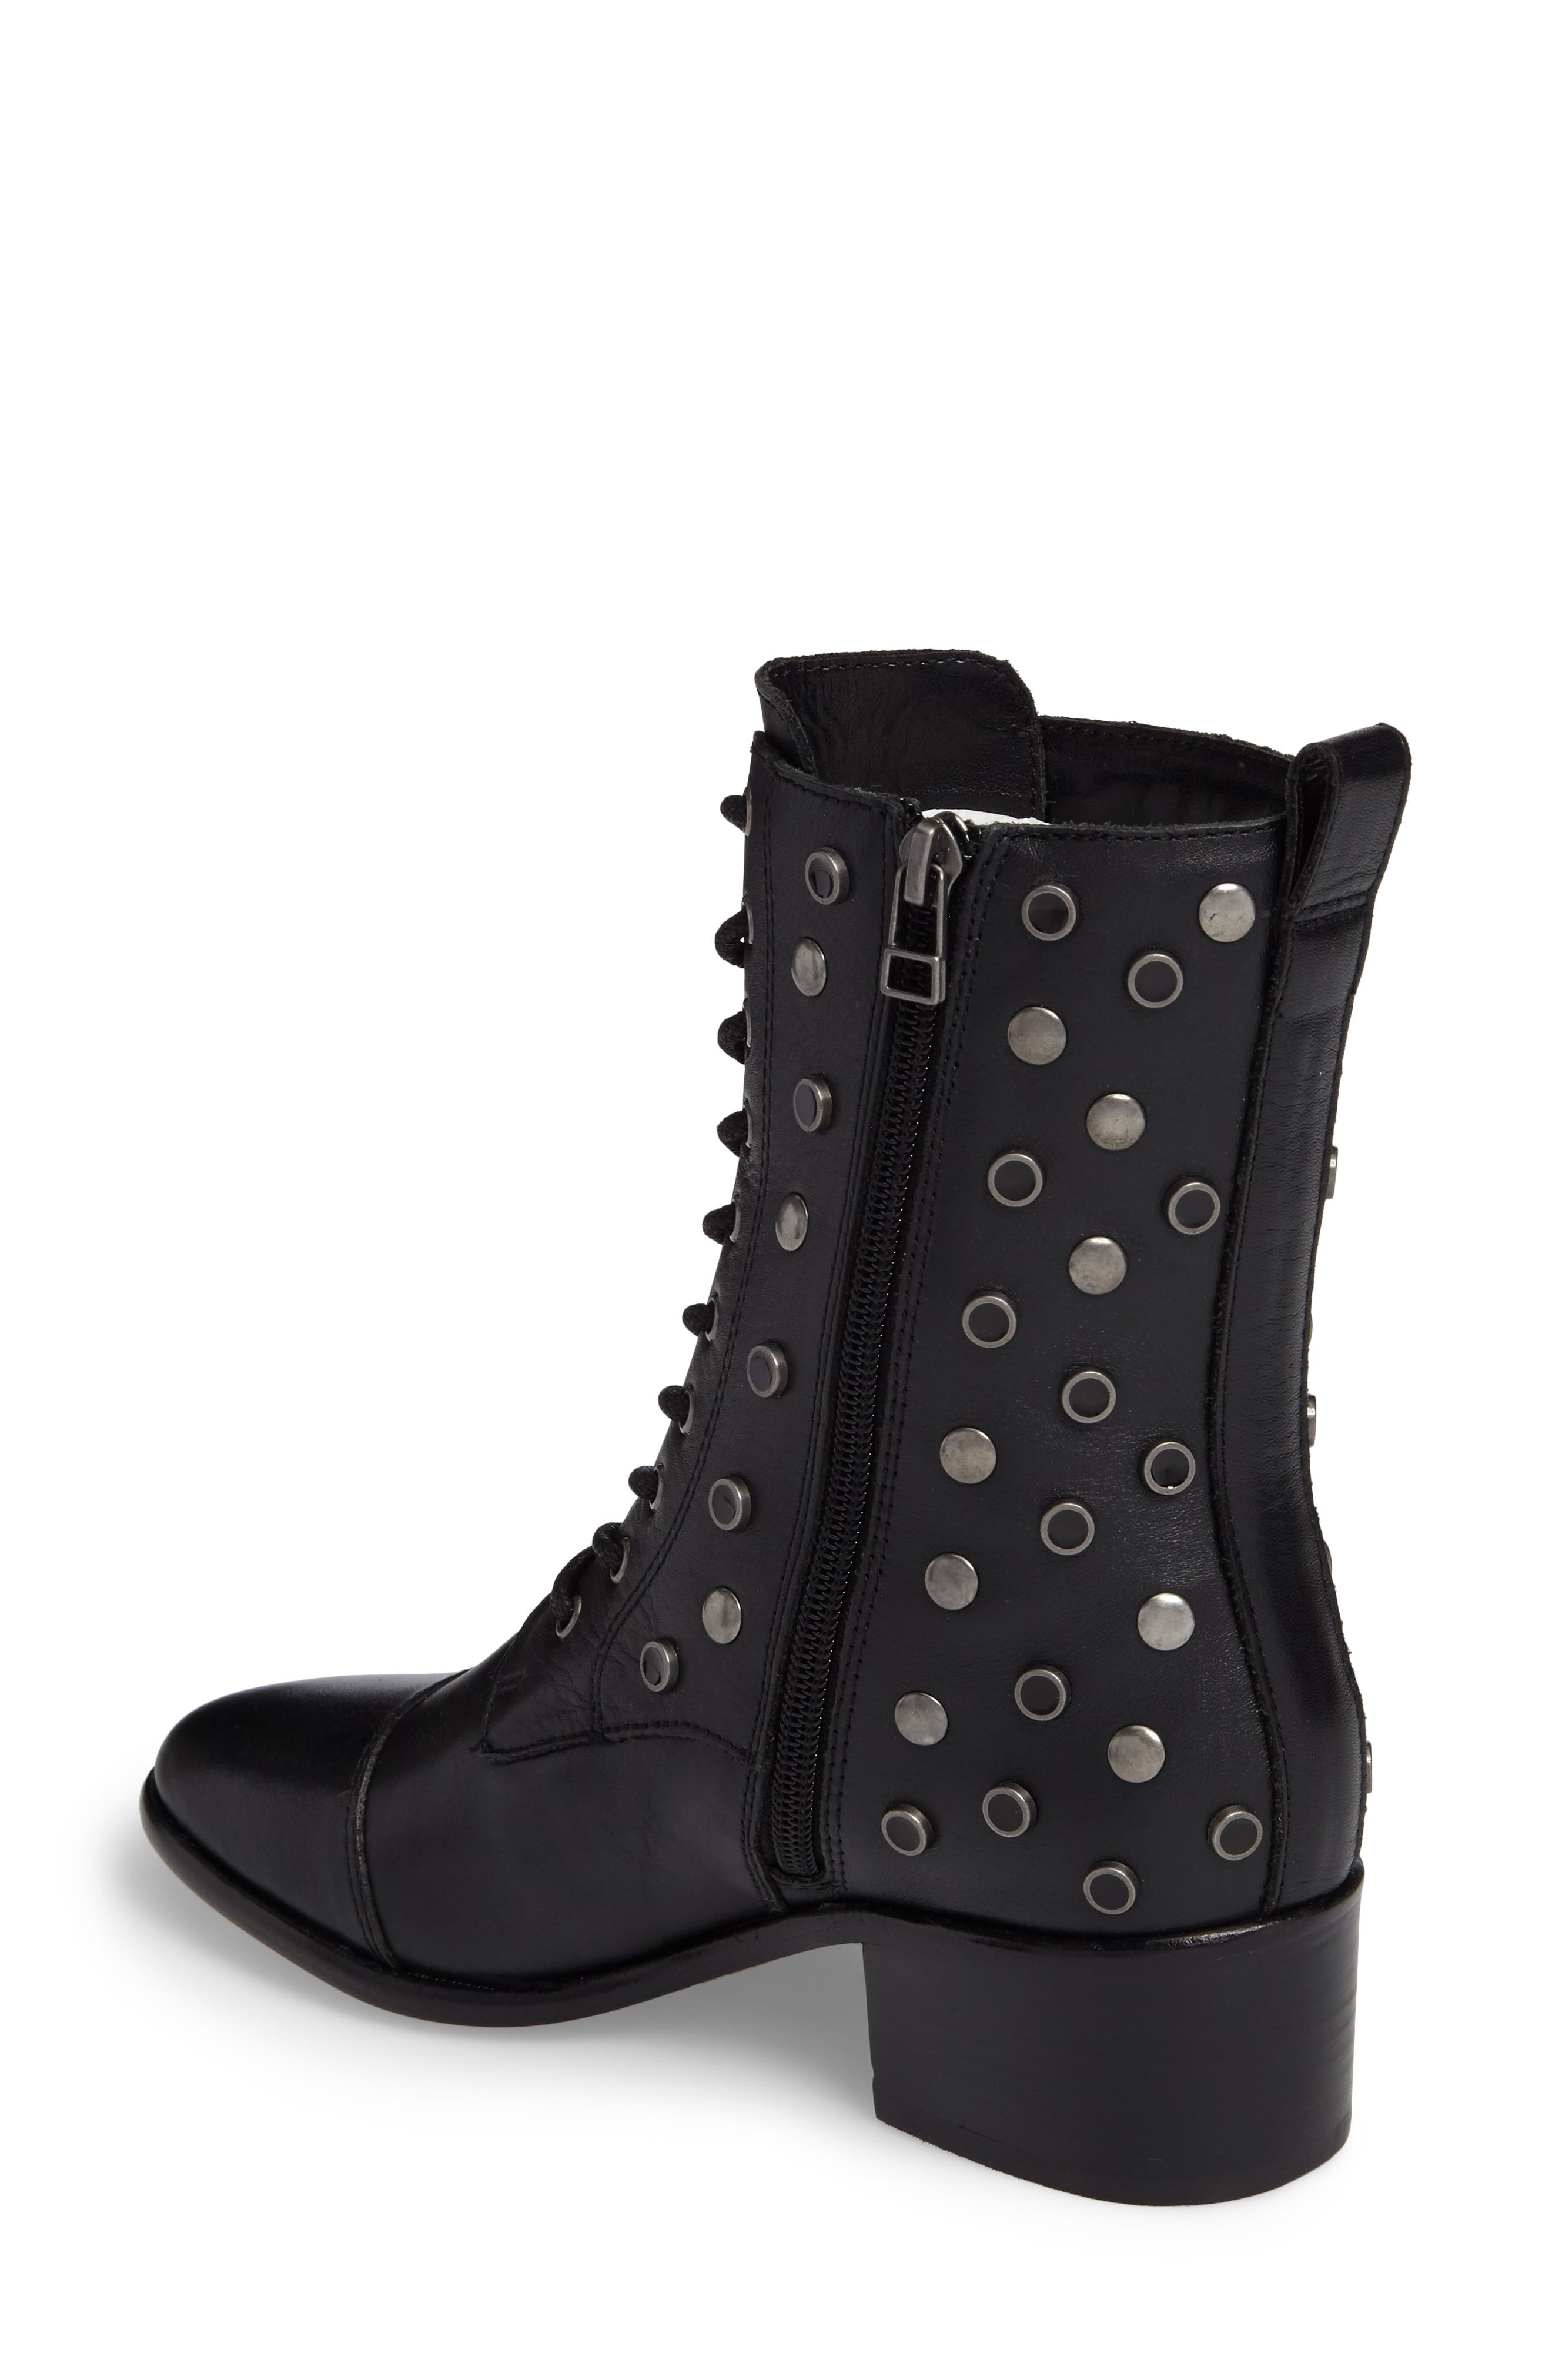 M4D3 Grazie Embellished Water Resistant Boot,                             Alternate thumbnail 2, color,                             Black Leather